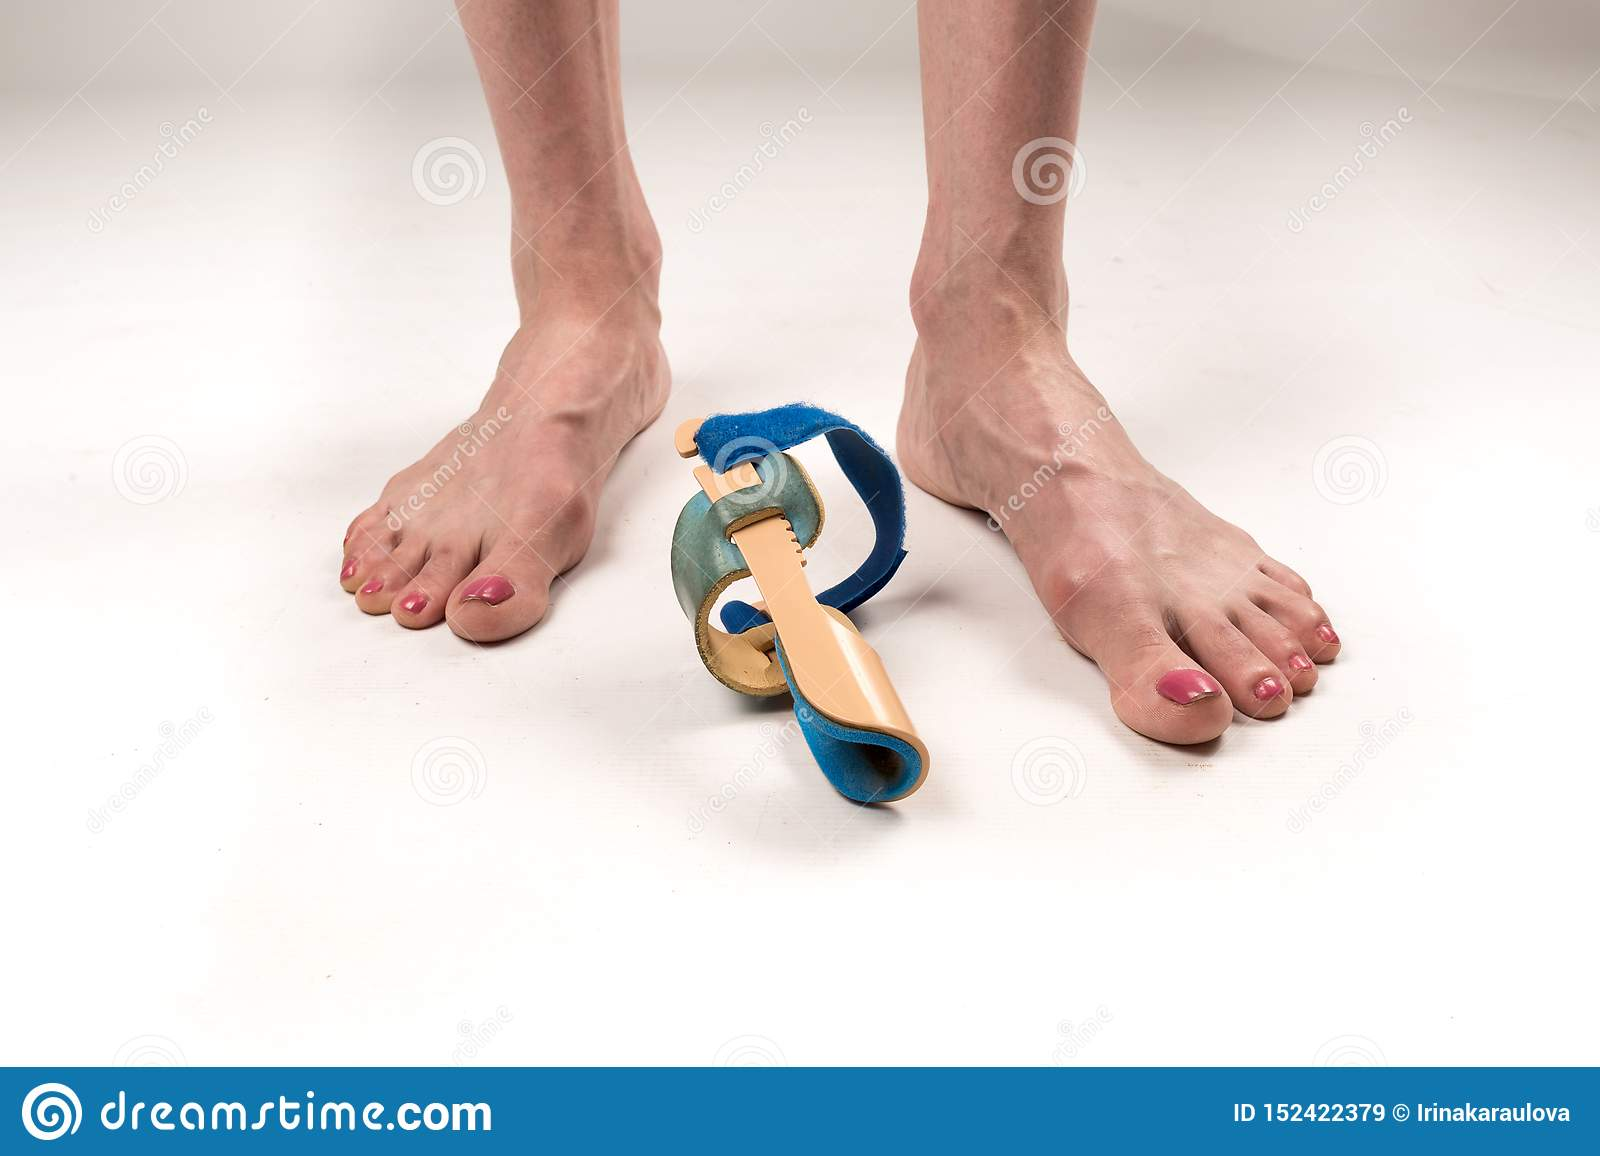 Stabilizing orthosis for the correction of the big toe on the woman legs when hallux valgus, 2 legs, close-up isolated, white